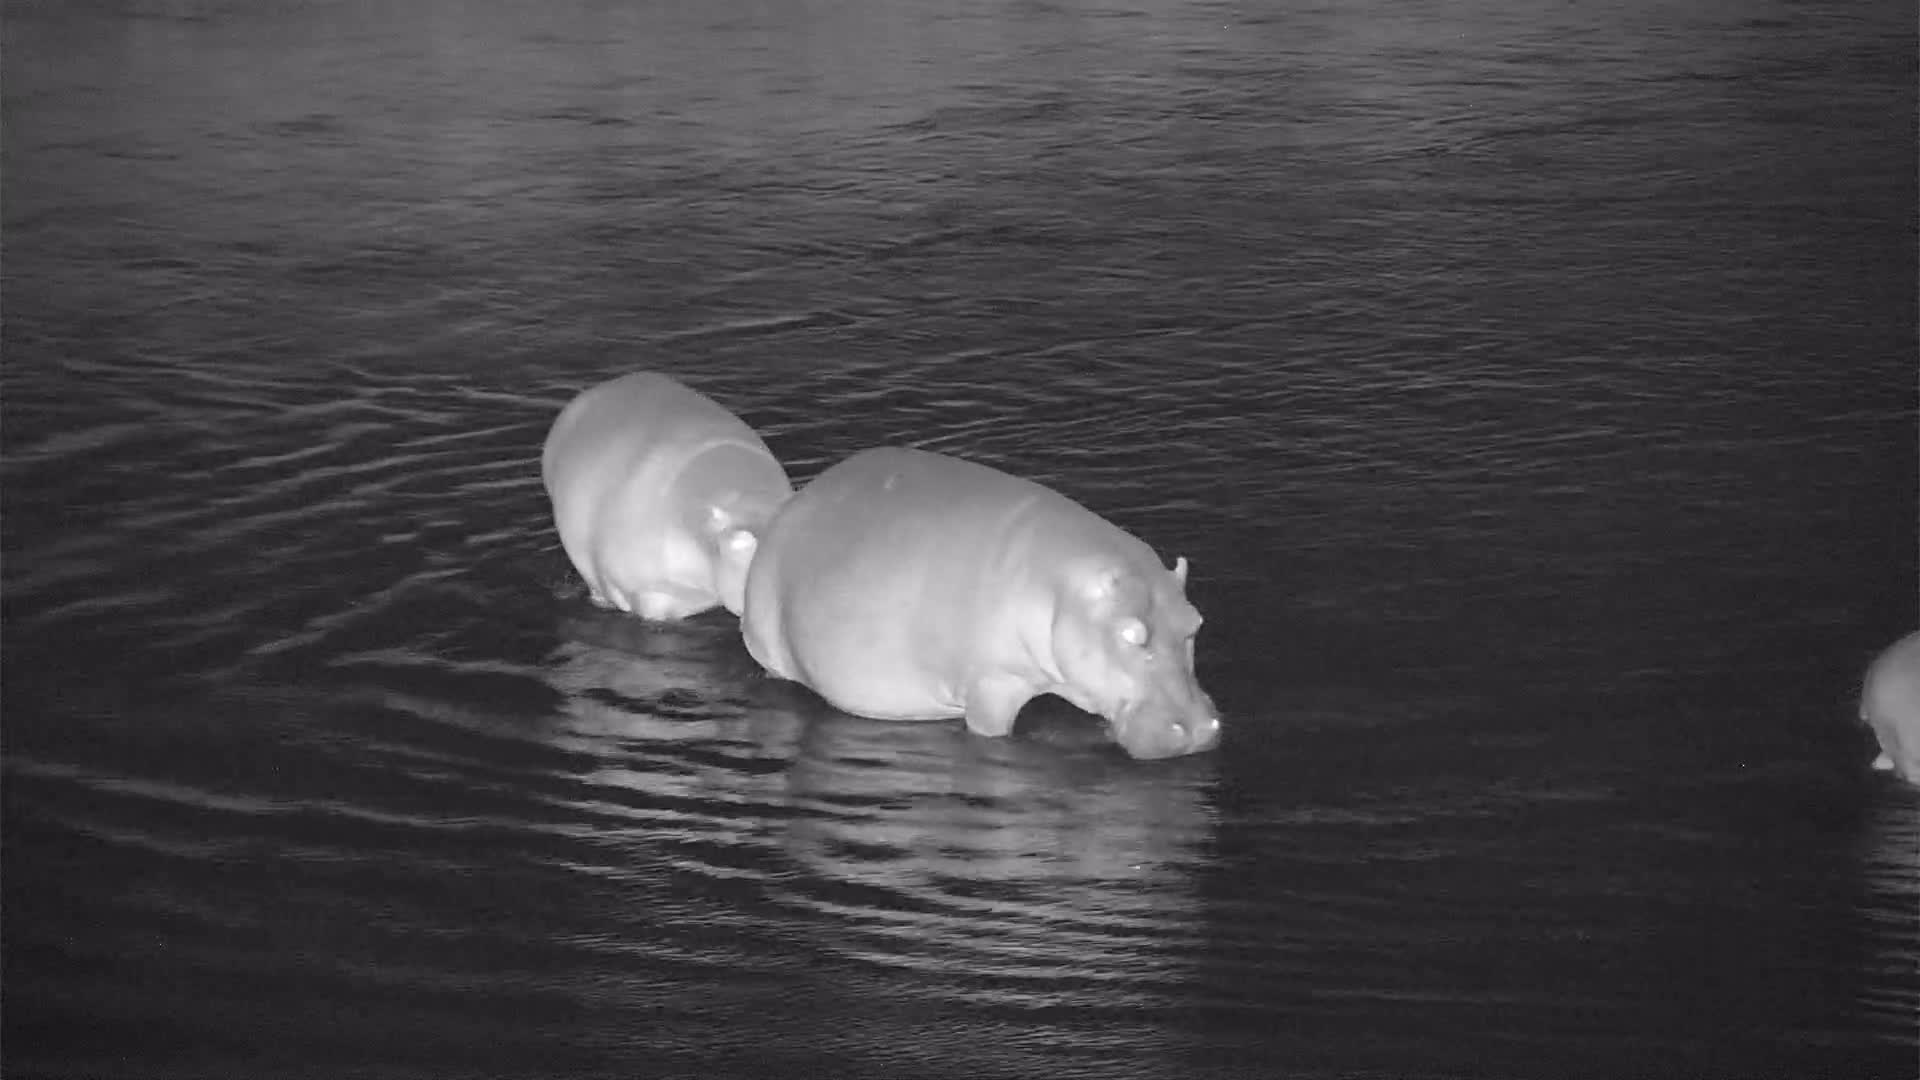 VIDEO: Hippos with the Baby crossing the river